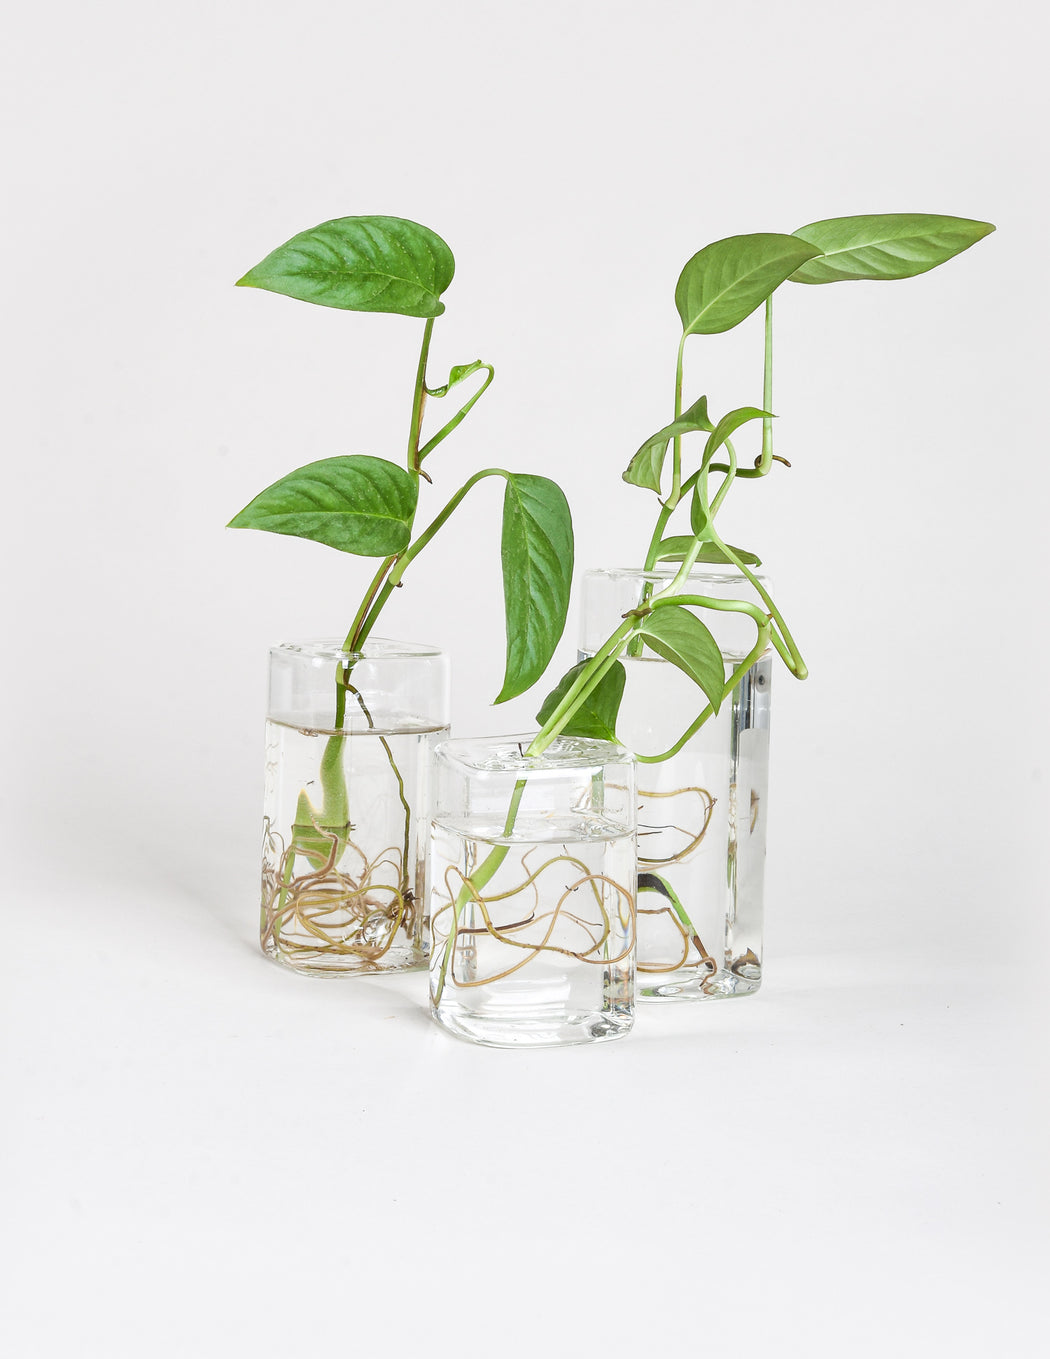 Glass Propagation Vase - Pistils Nursery - Monstera adansonii rooting in glass vessels